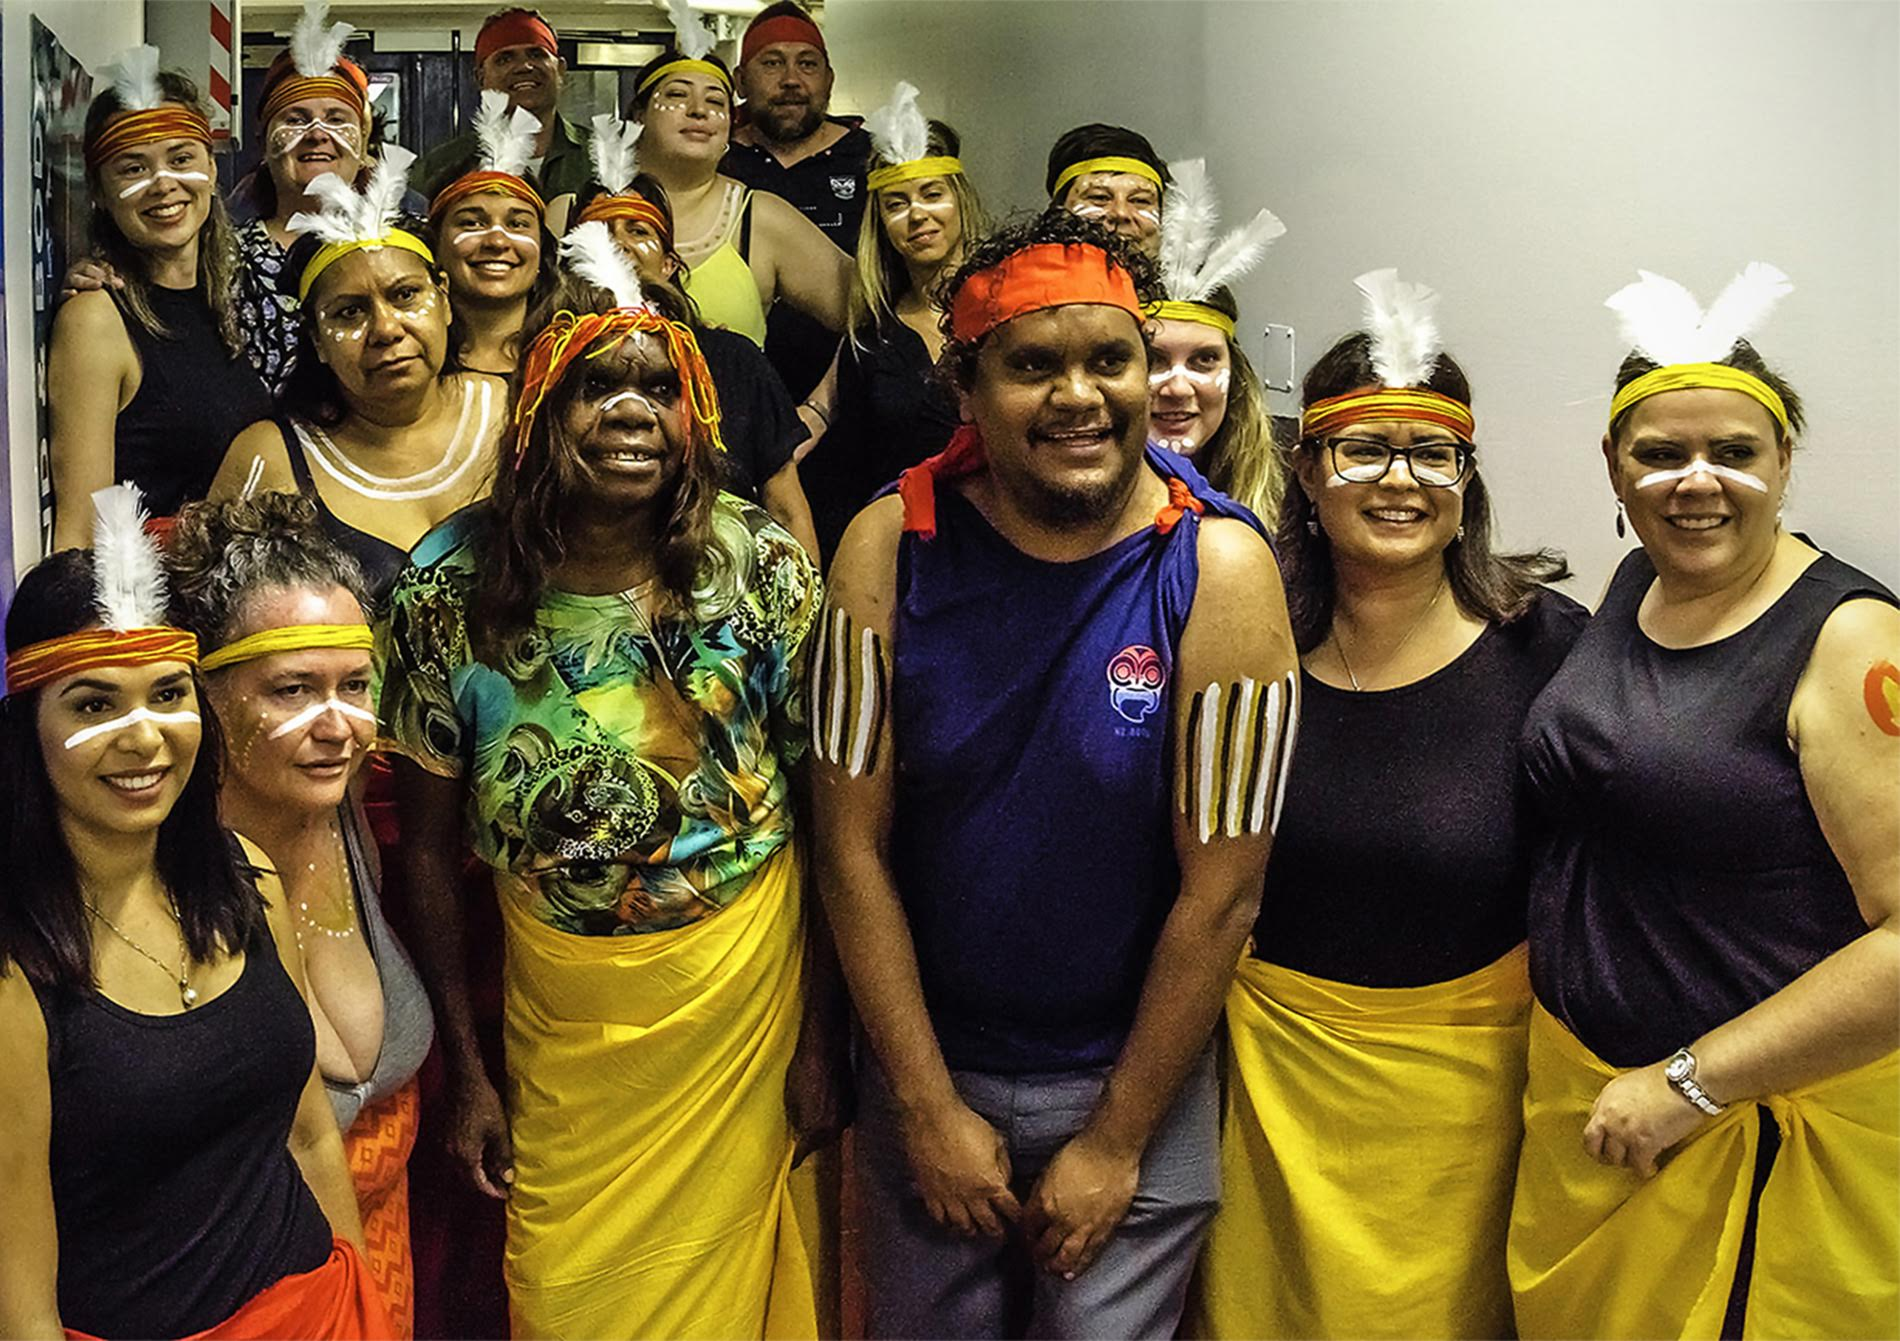 Some of the Australian Indigenous Doctors group prepared to dance. Photo Claudia Jocher.